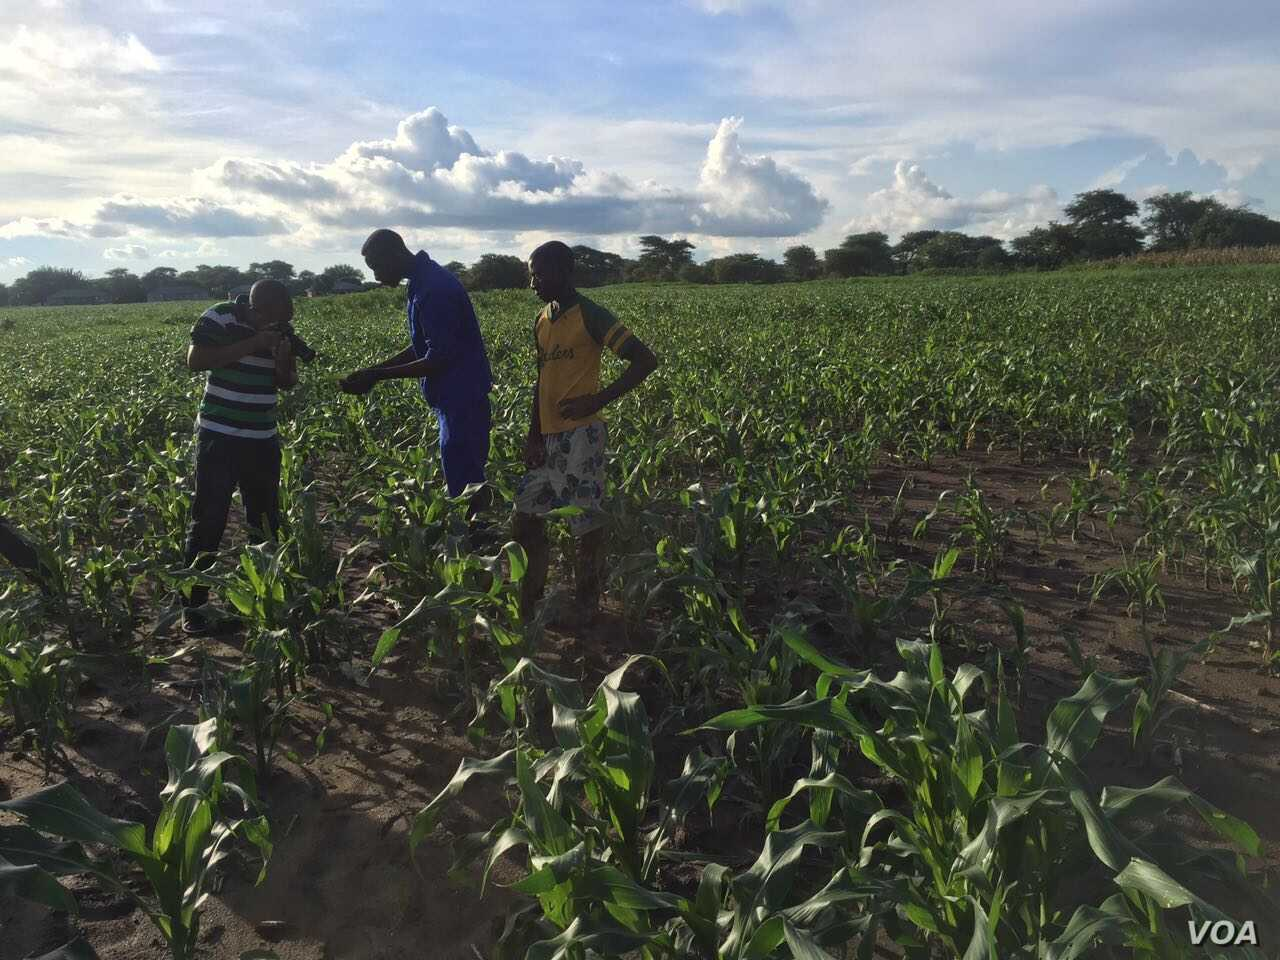 The army worms invasion has attrached a lot of media attention in Zambia. (Courtesy - Derrick Sinjela in Zambia)